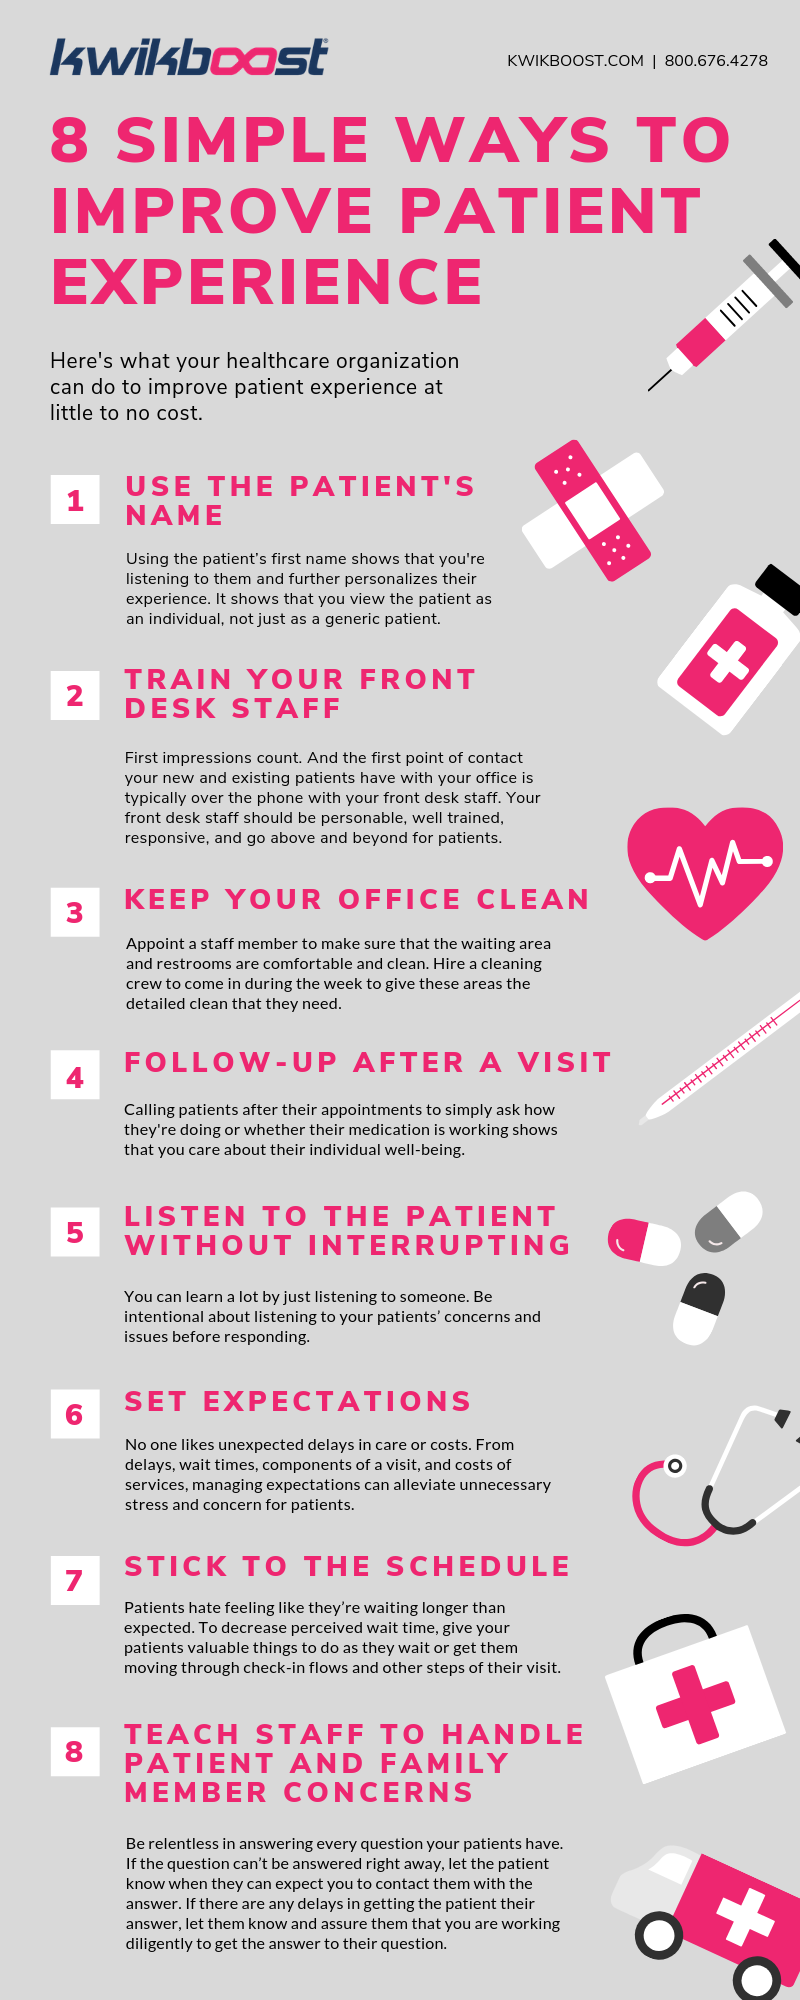 8 Simple Ways to Improve Patient Experience Infographic